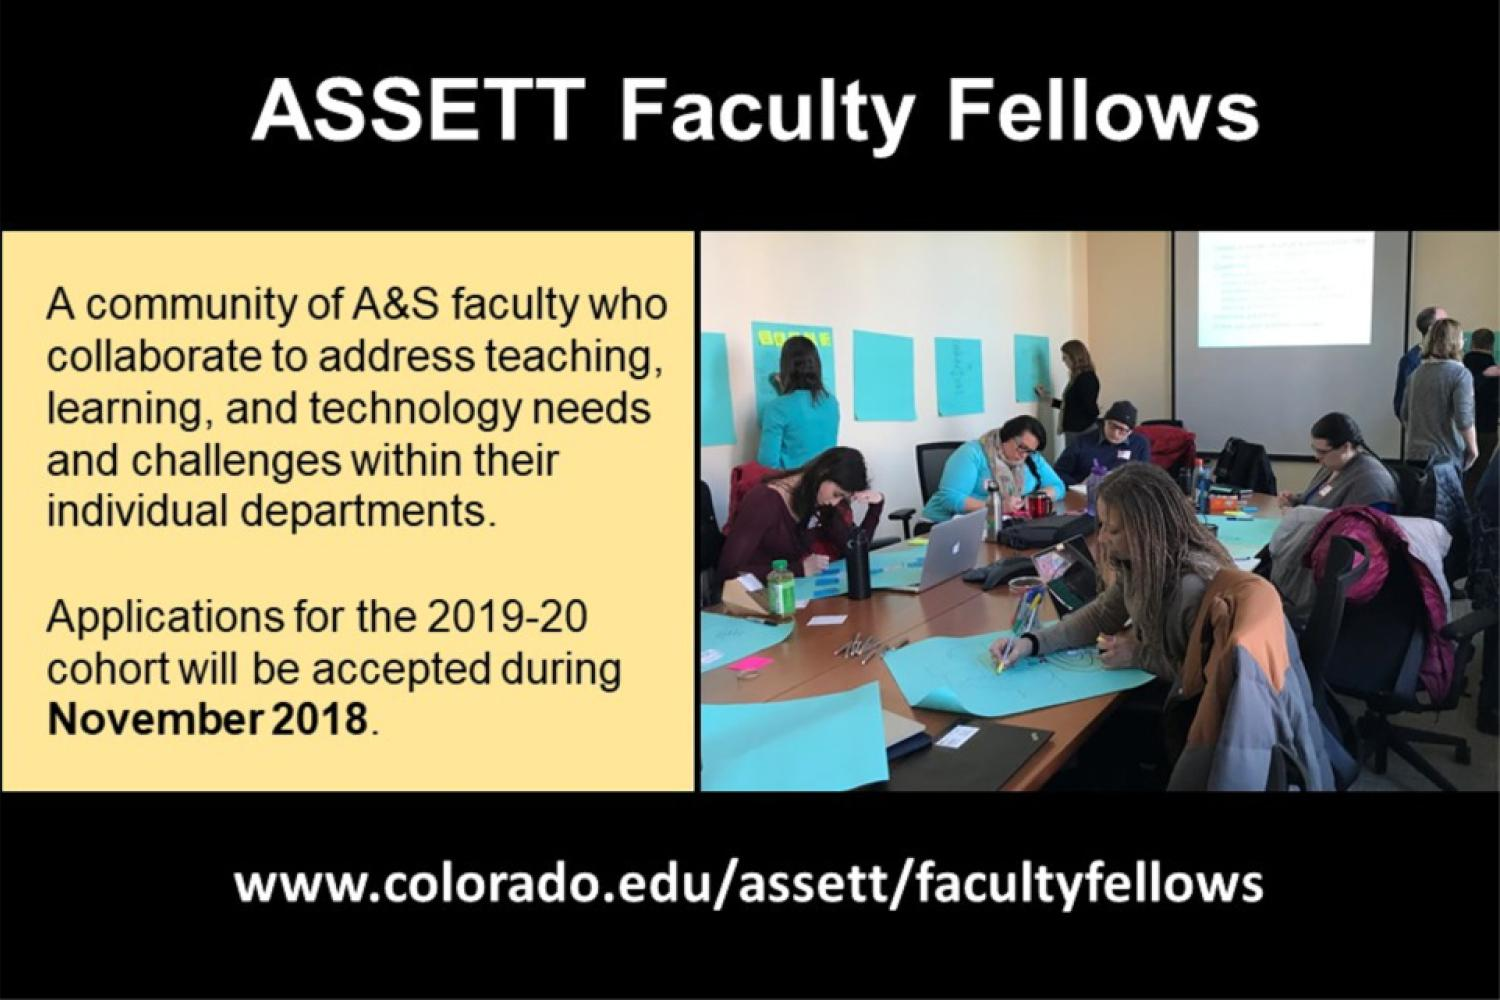 ASSETT Faculty Fellows are a community of A&S faculty who collaborate to address teaching, learning, and technology needs and challenges within their individual departments. Applications for 2019-20 cohort will be accepted during November 2018. www.colorado.edu/assett/facultyfellows